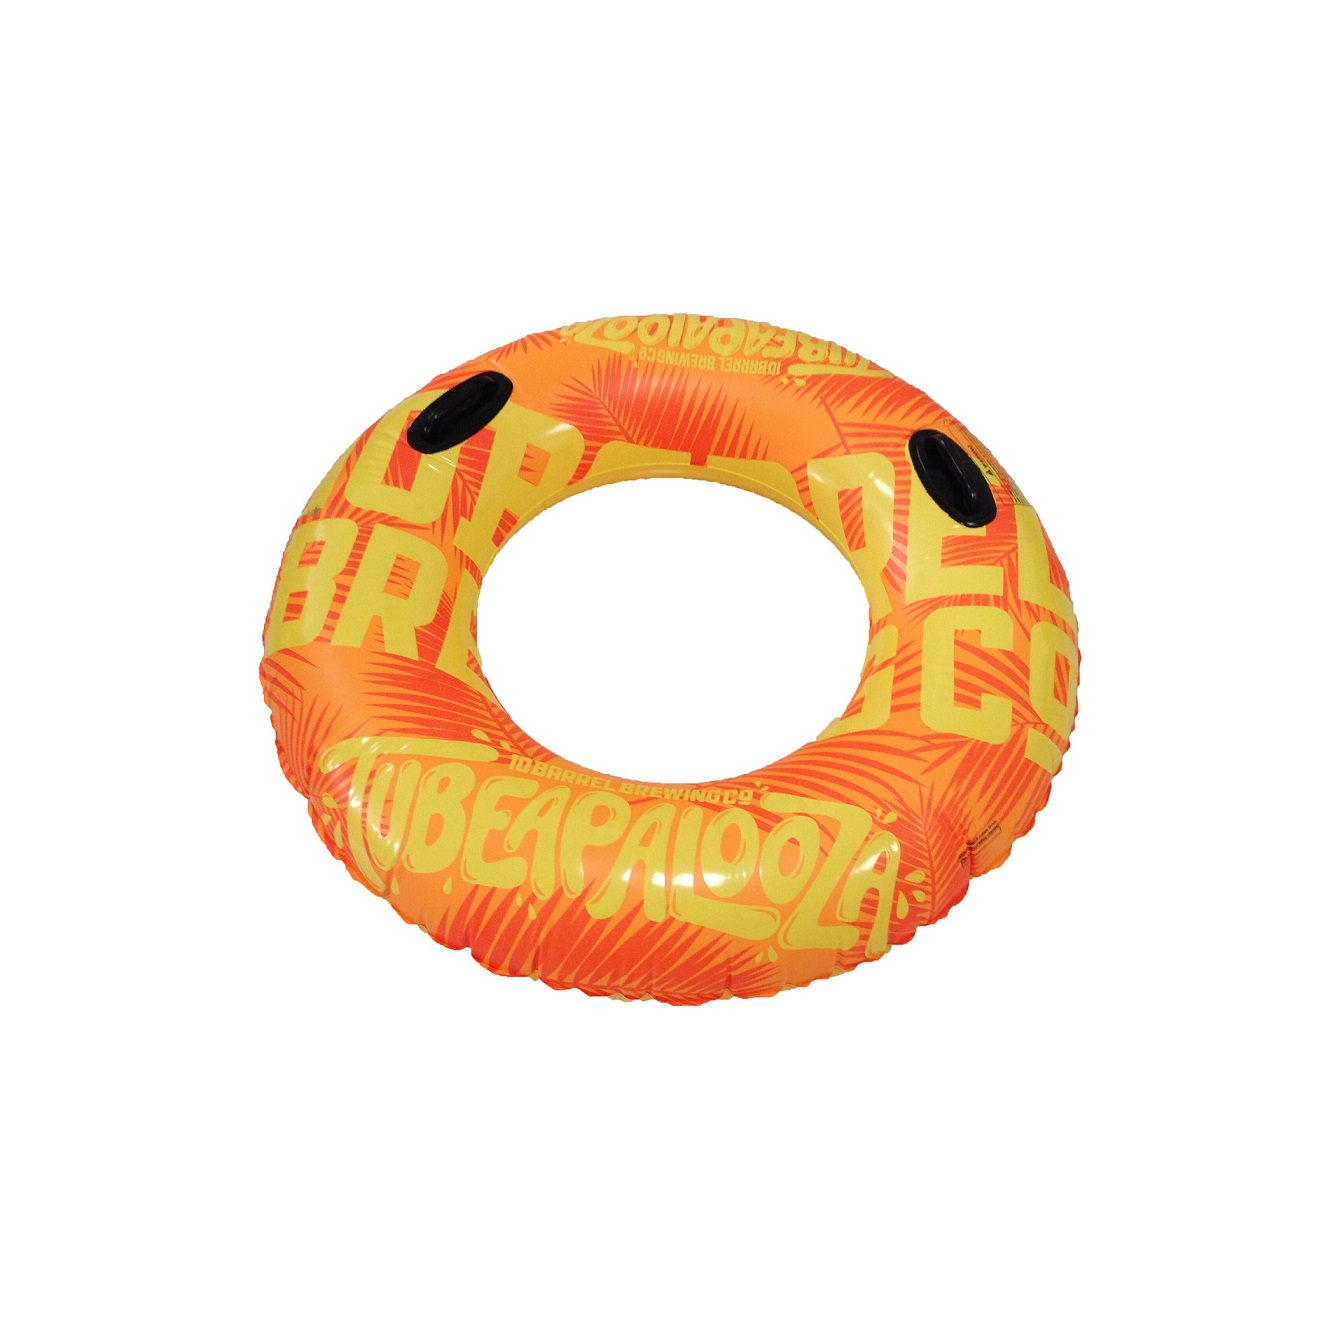 GL-AAA1030 40inch Dia. Inflatable Swim Ring Adult Tube with Handle